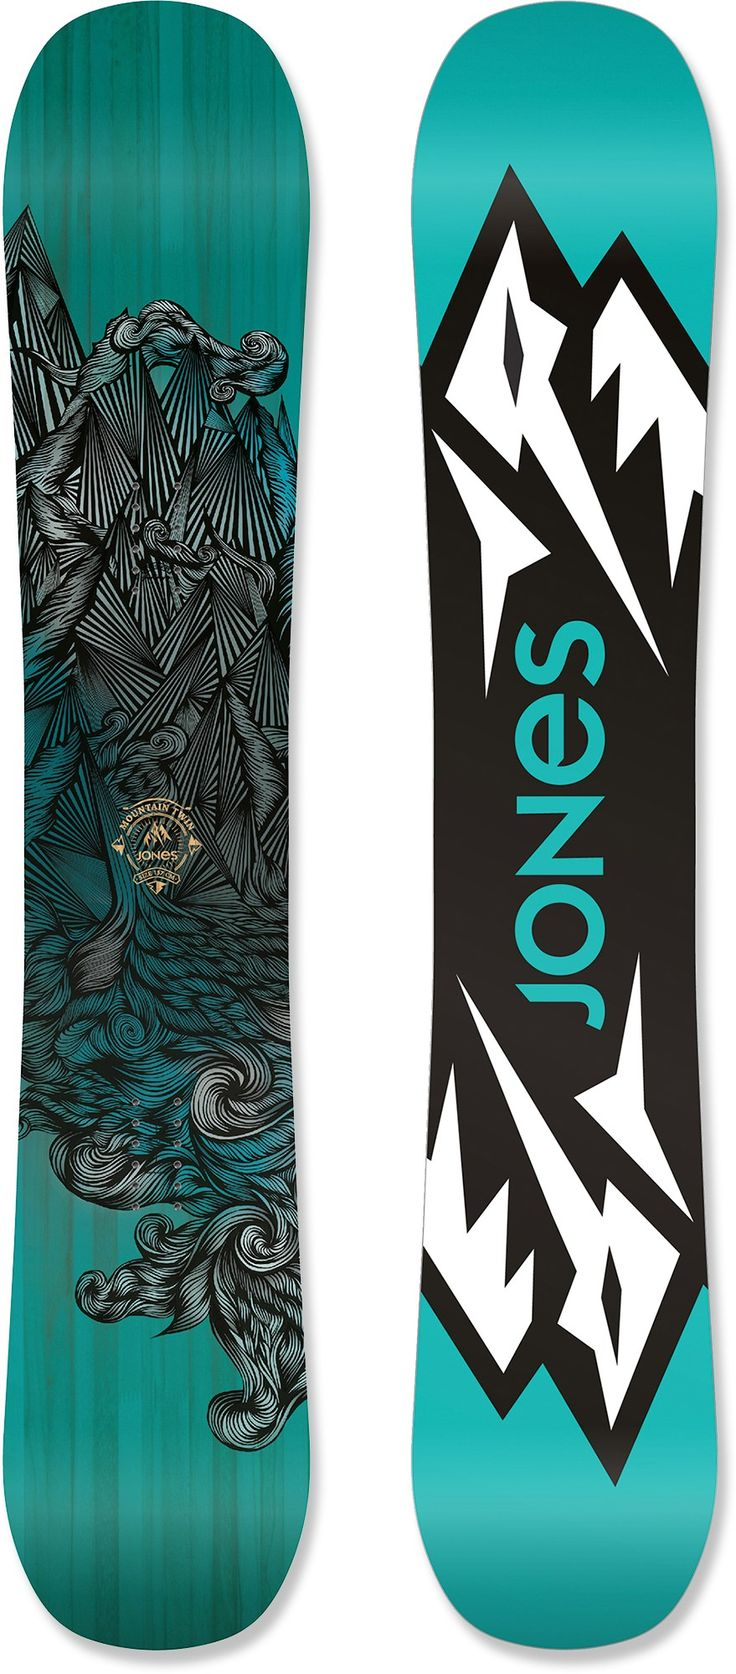 Jones Mountain Twin Snowboard - 2014/2015